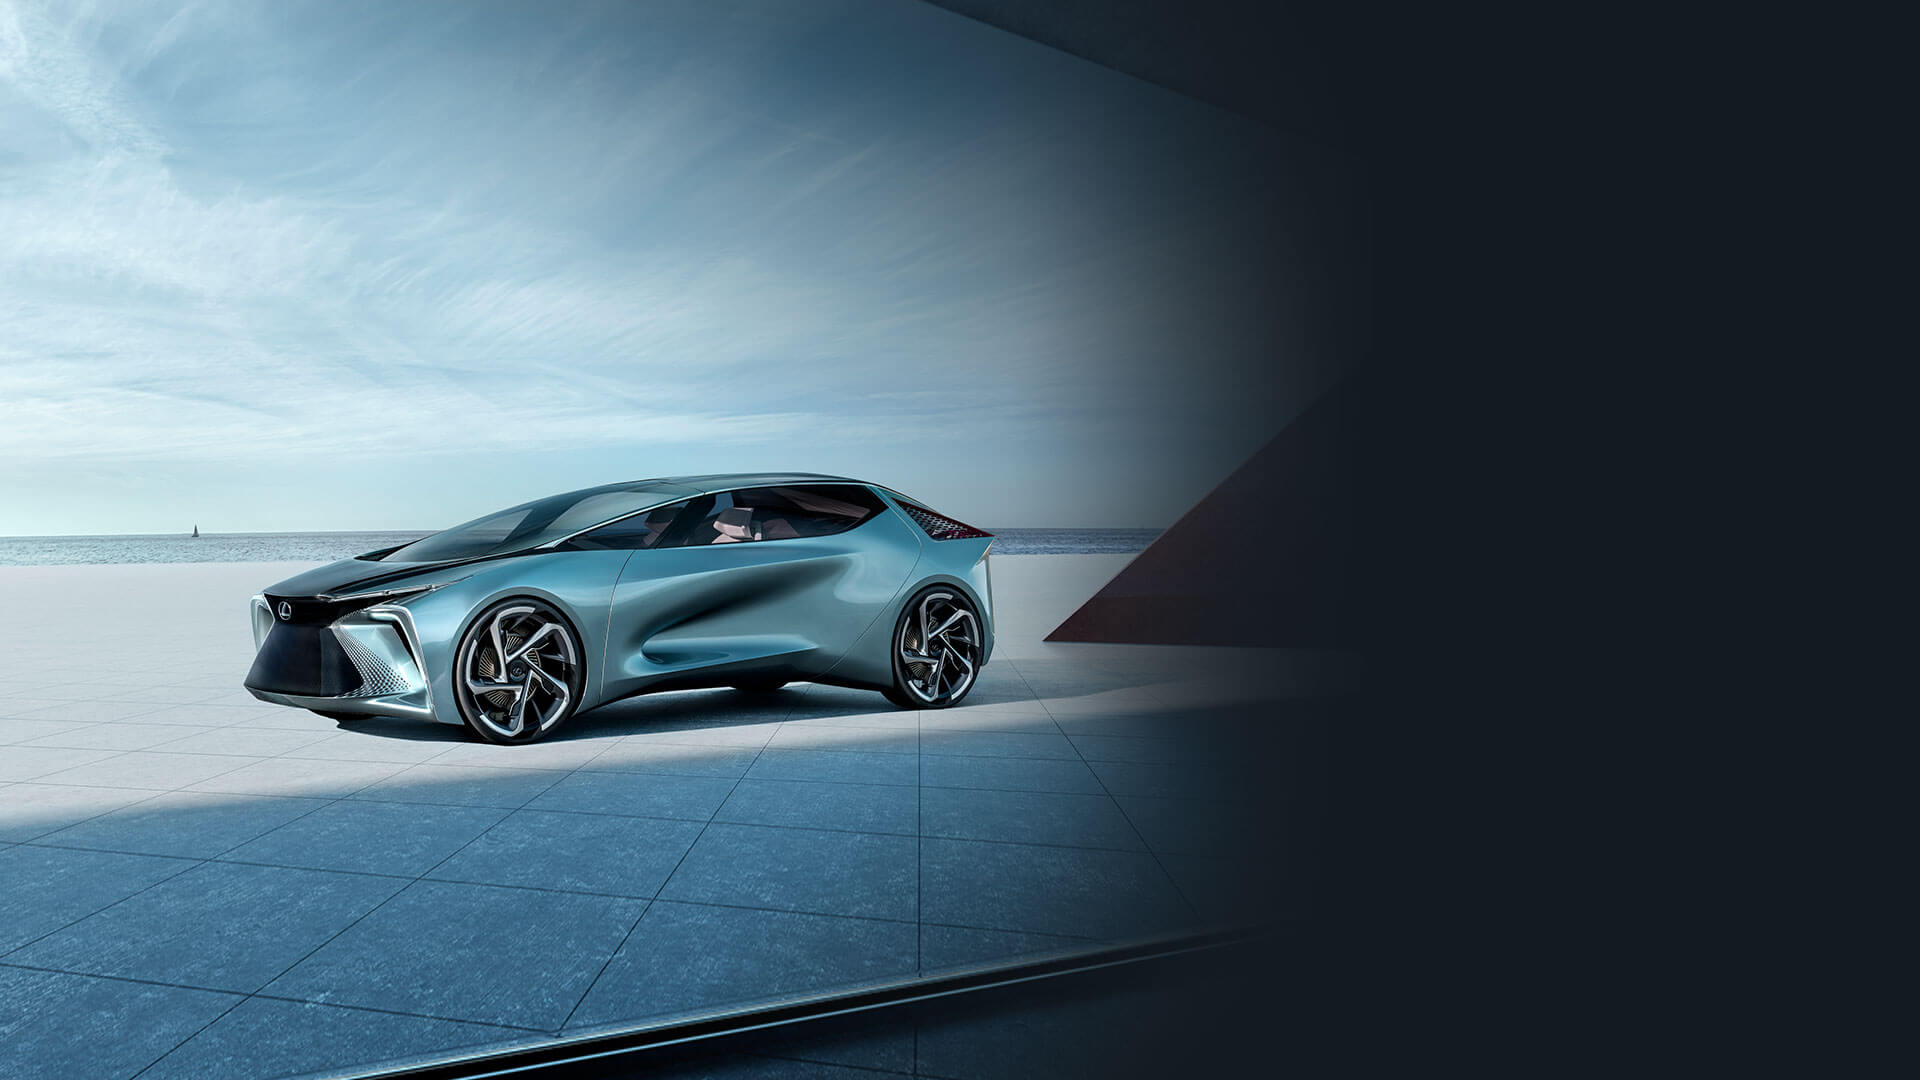 03 LF 30 Concept Car Hero Image